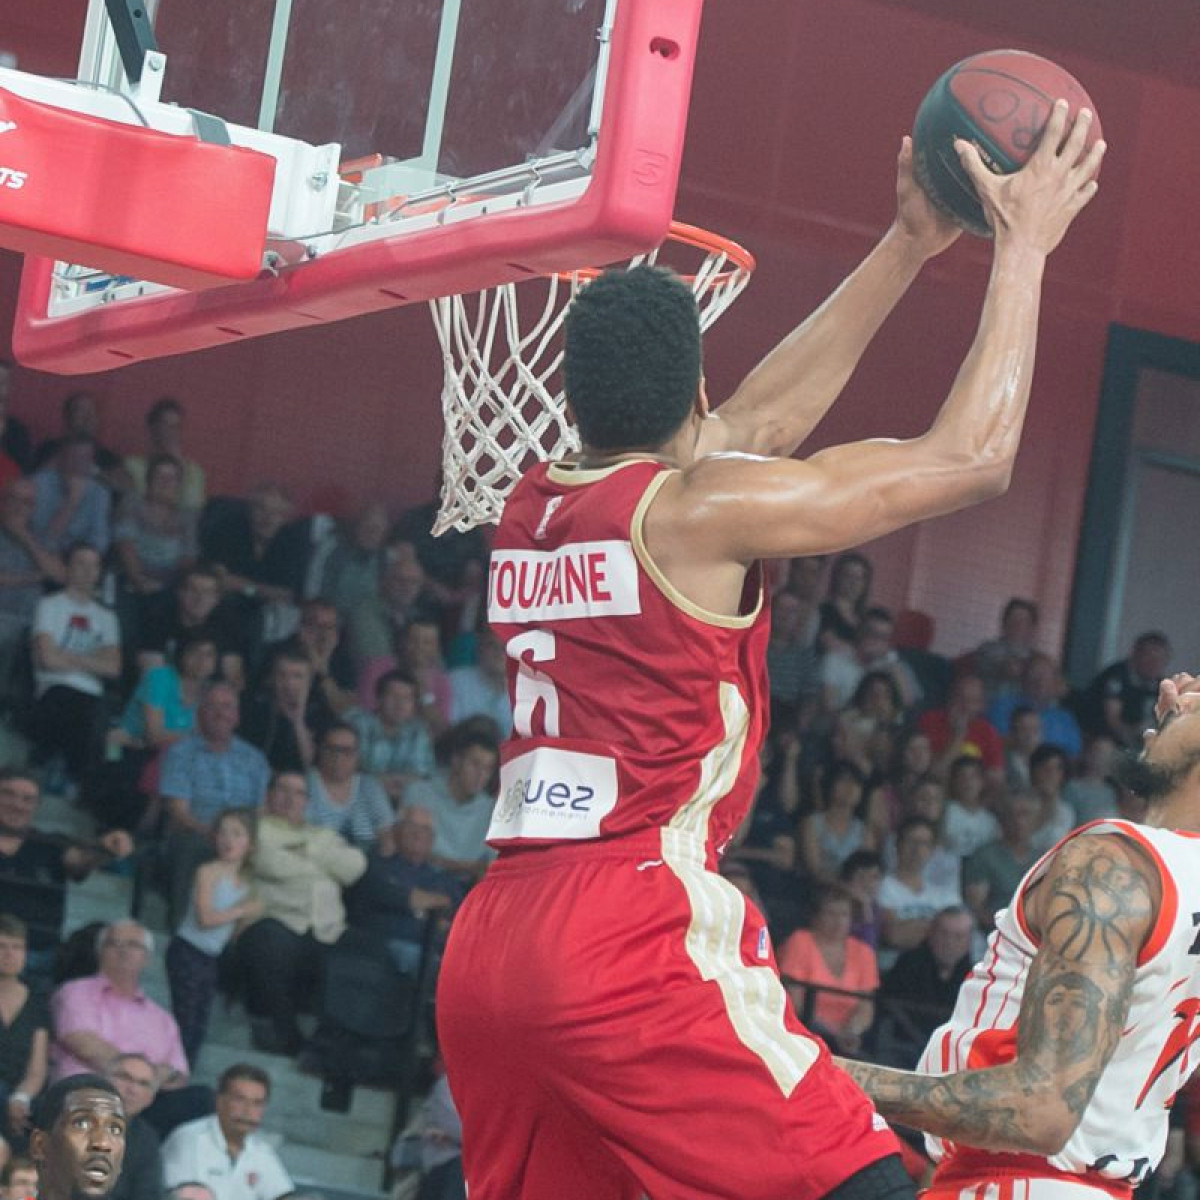 Photo of Axel Toupane, 2014-2015 season